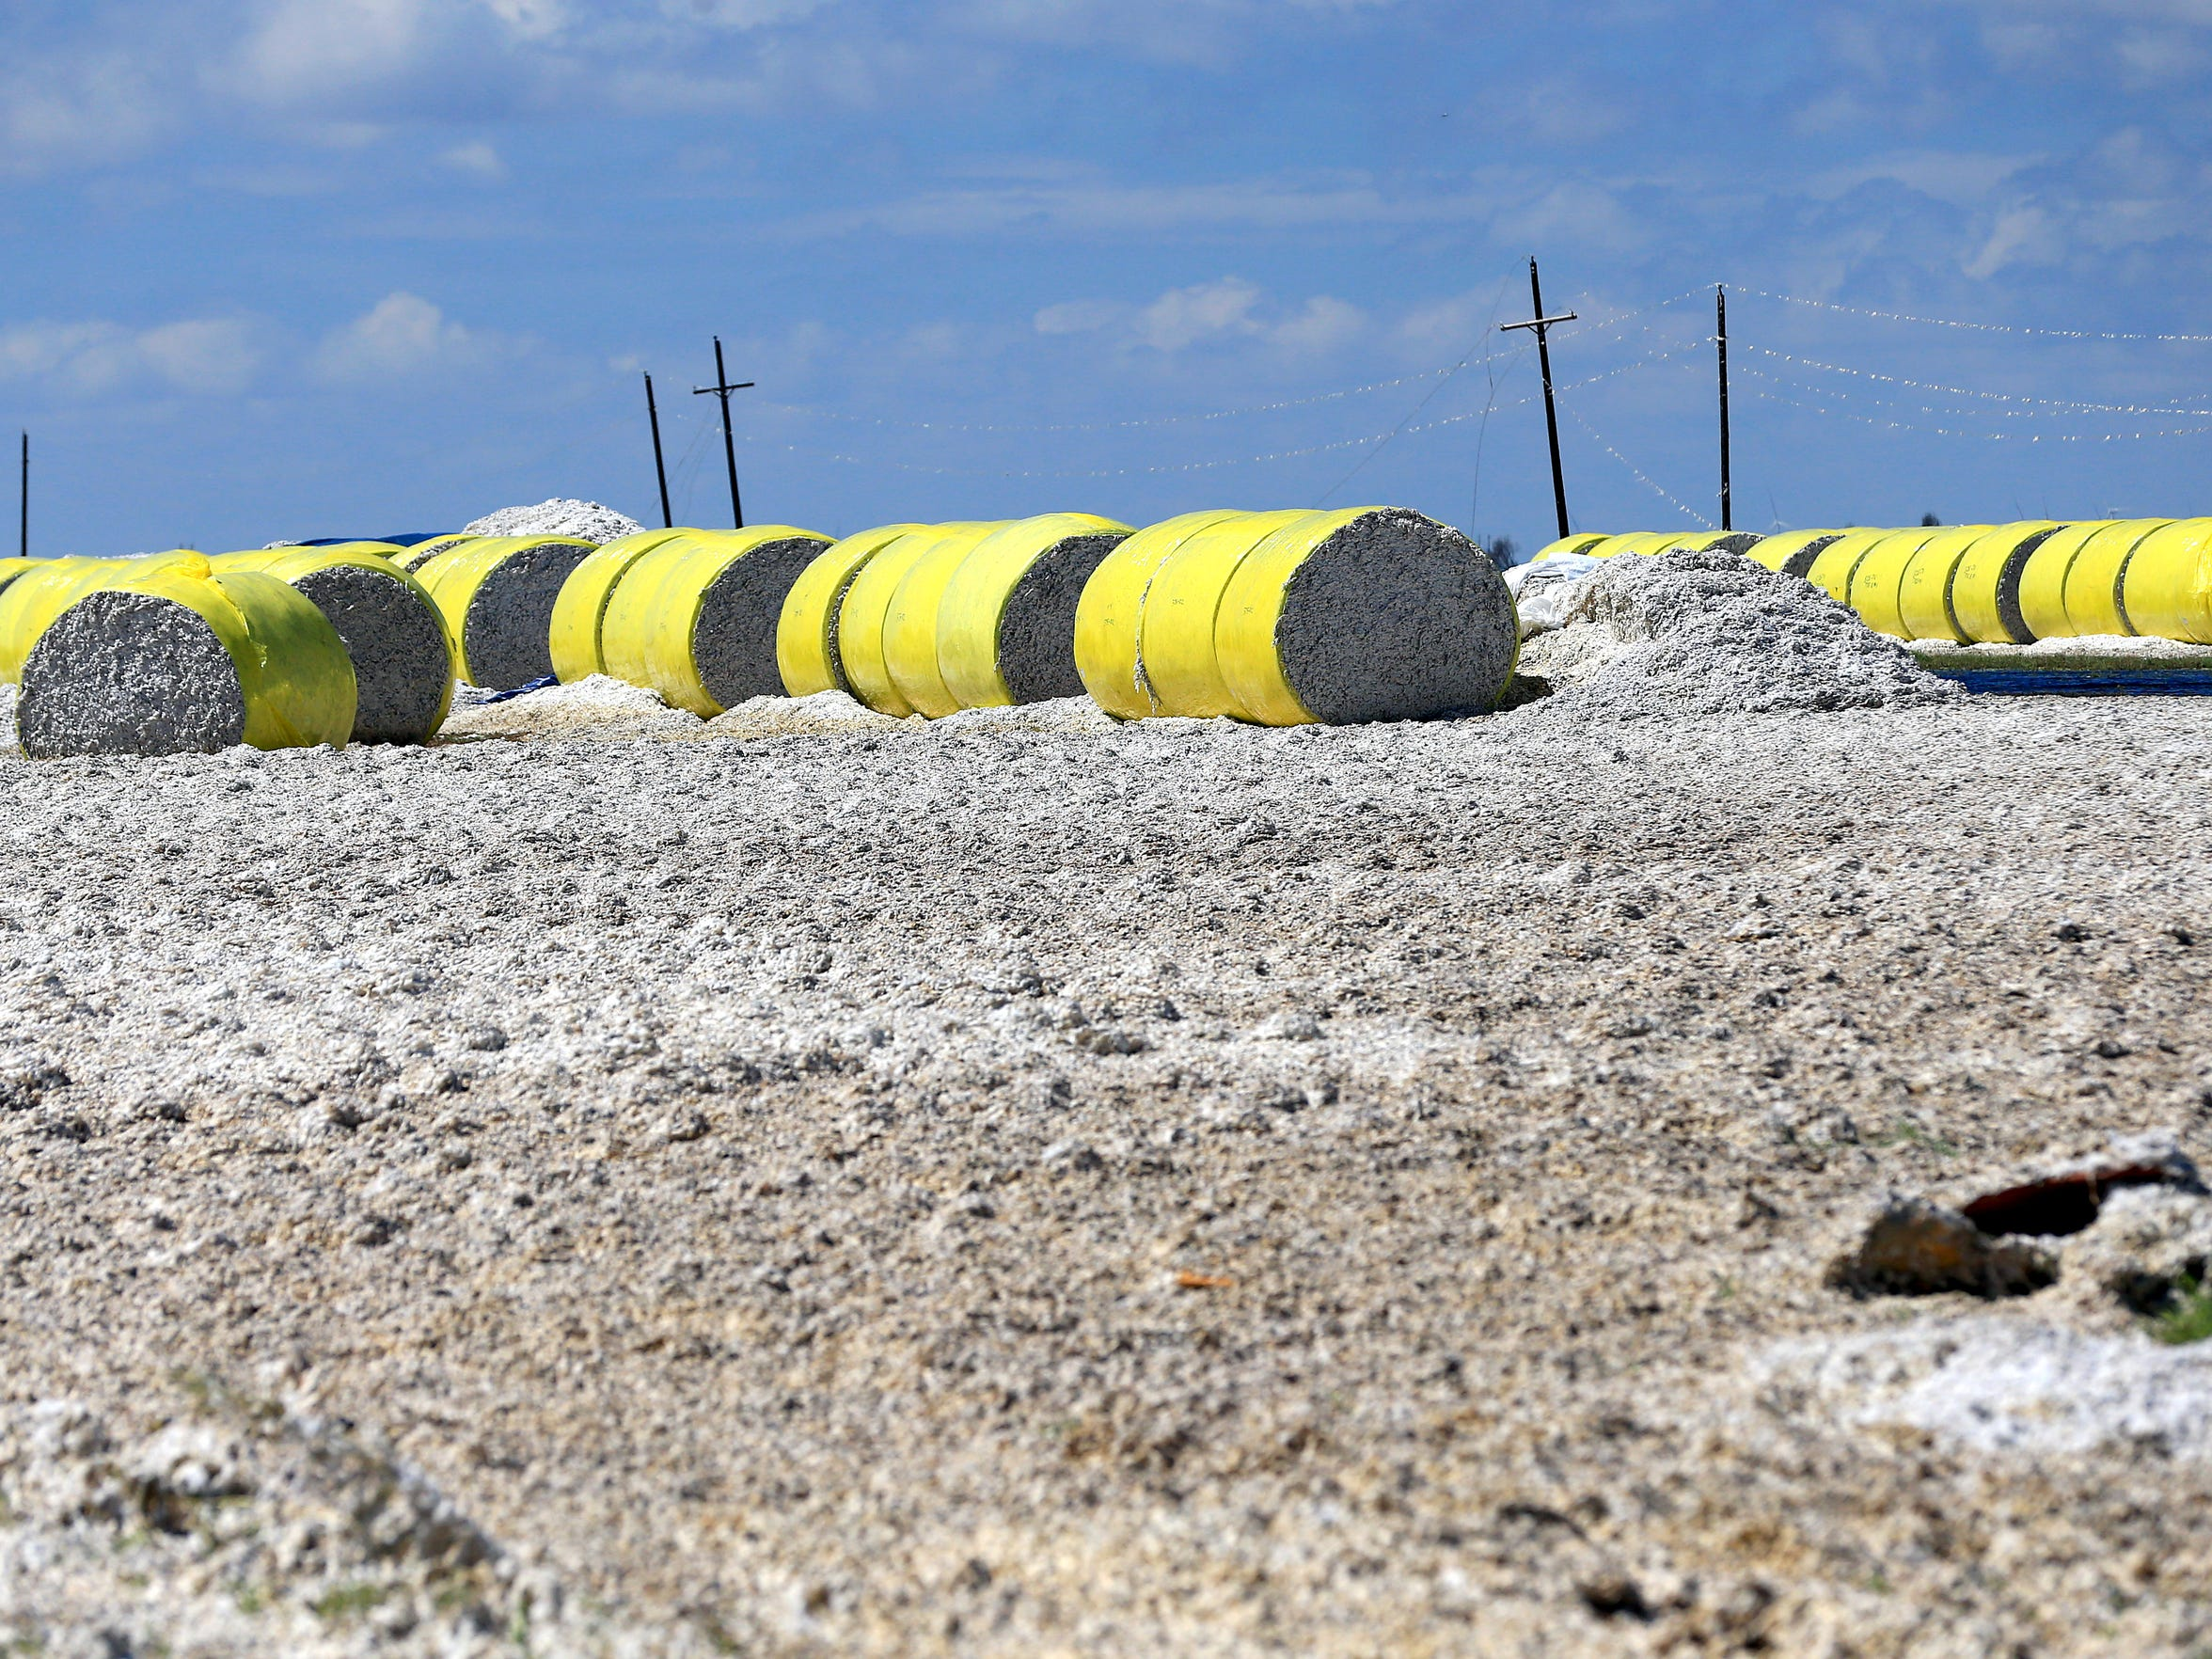 Cotton covers the land after Hurricane Harvey damaged several cotton bales Tuesday, Aug. 29, 2017, on Farm-to-Market Road 629 near Bayside, Texas. Harvey struck the Texas Coastal Bend as a Category 4 Friday, August 25, 2017.